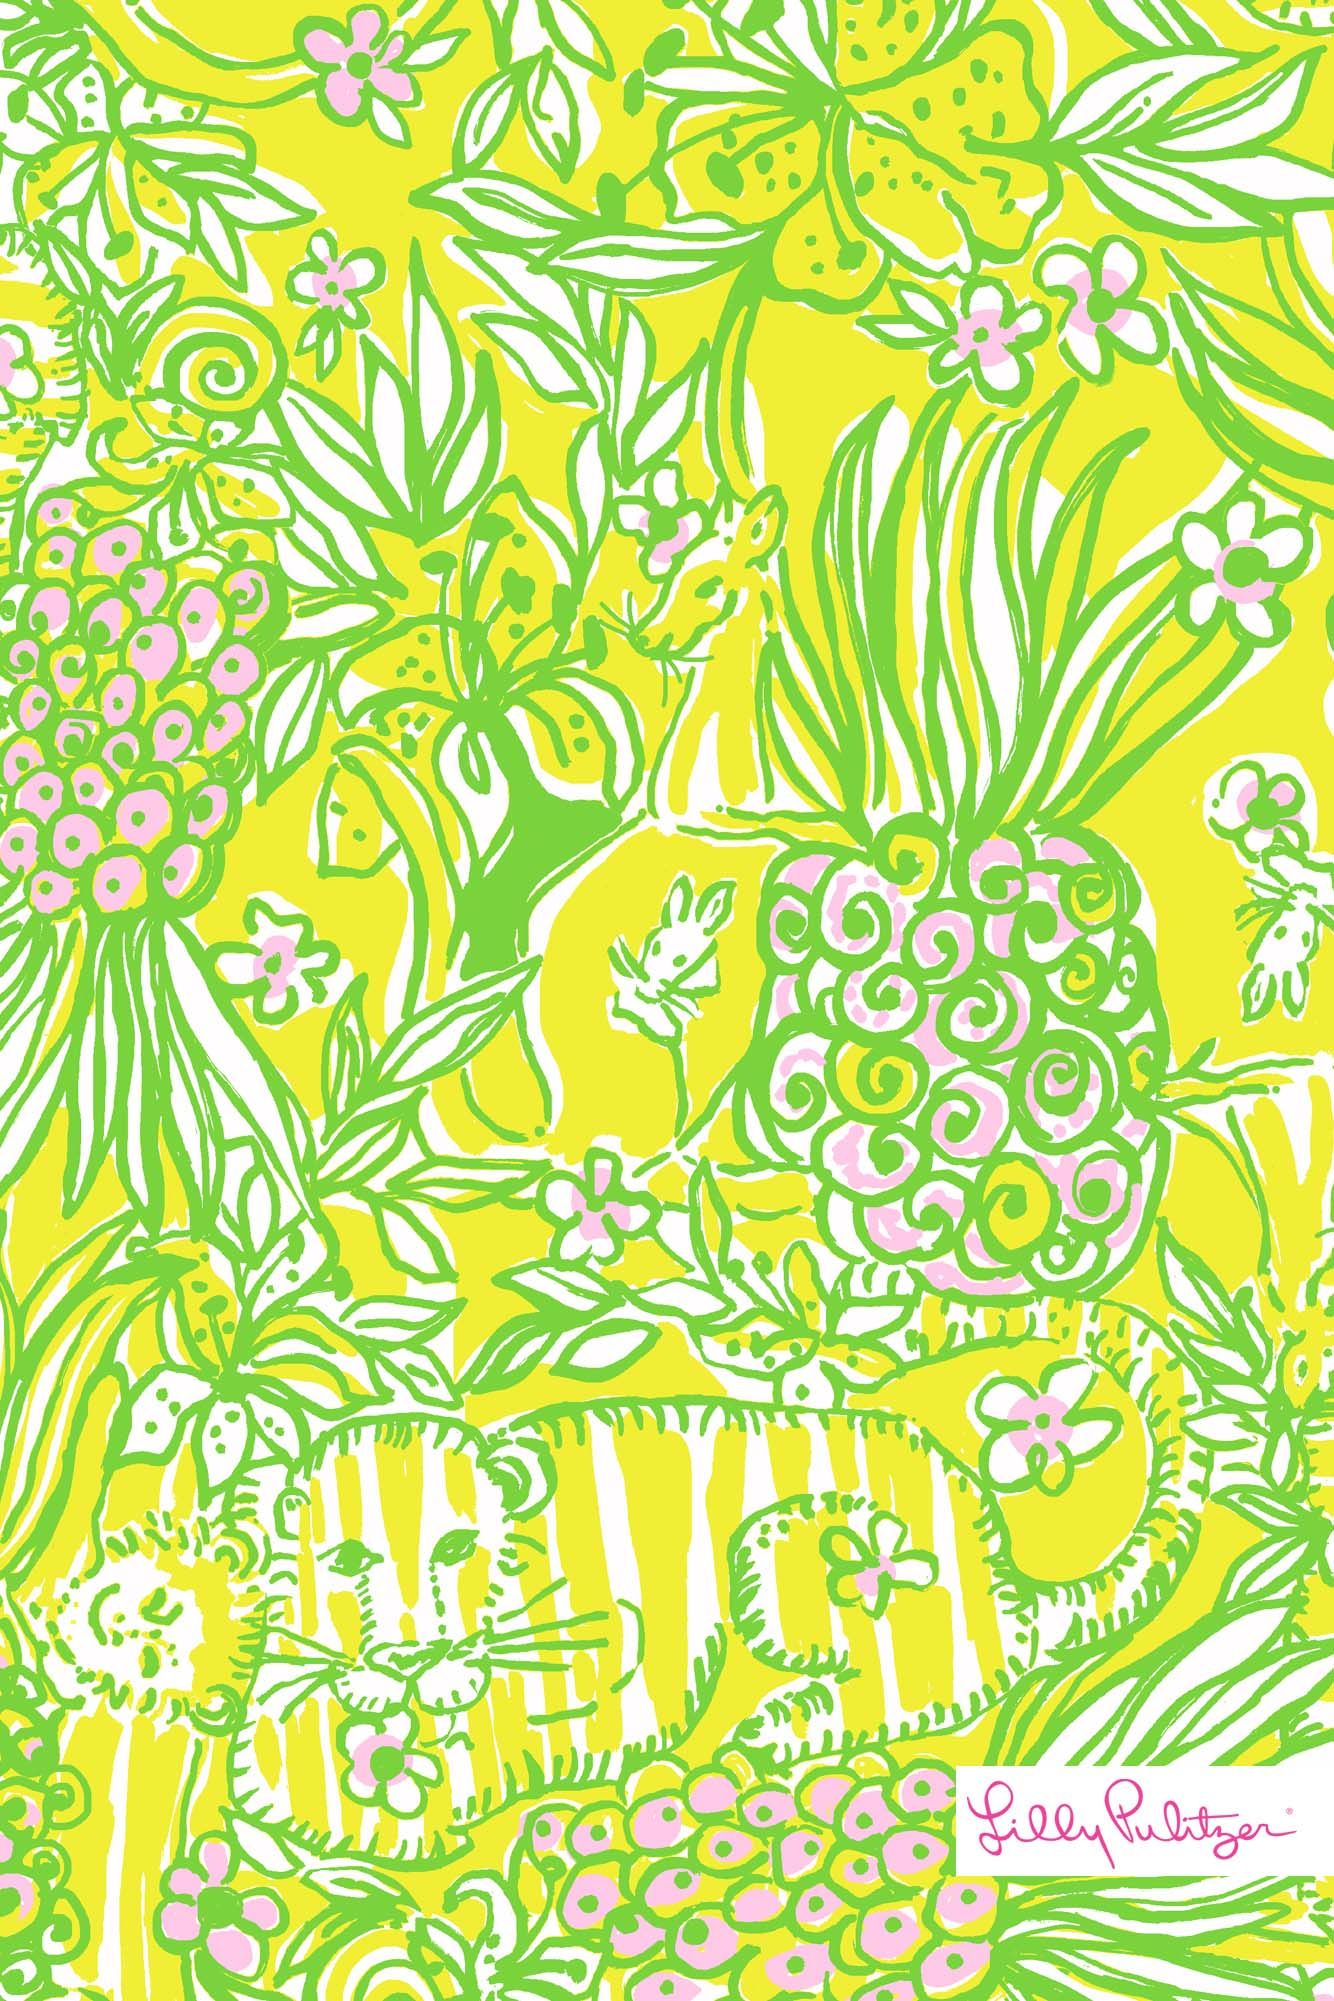 Lilly Pulitzer House lilly pulitzer crazy cat house wallpaper for iphone | patterns we